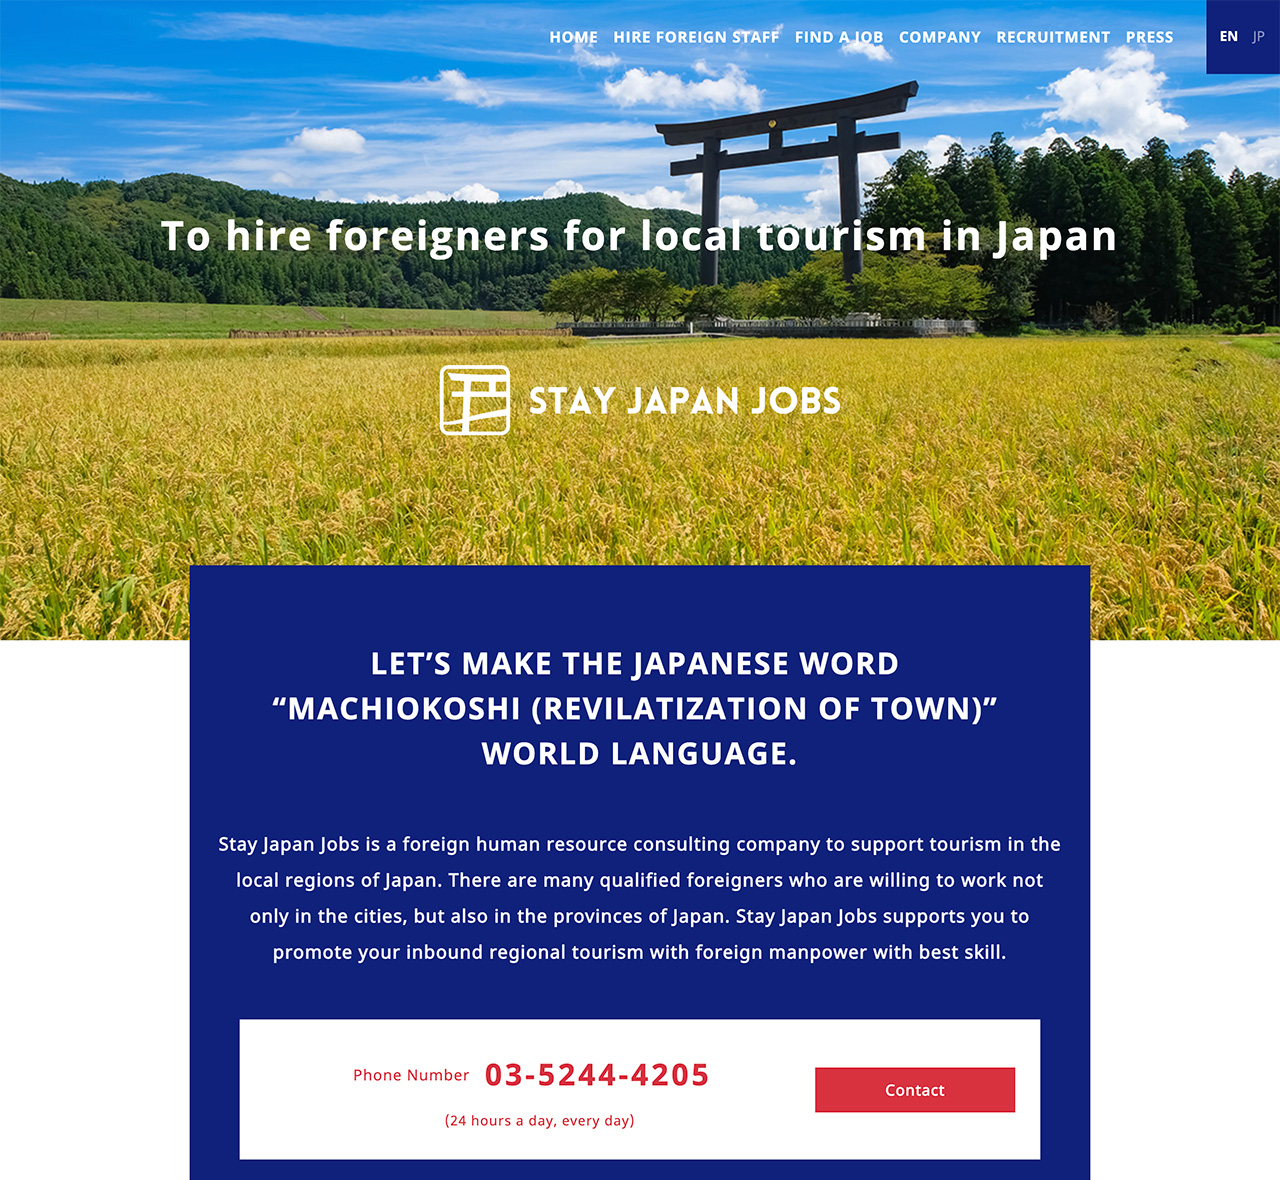 Stay Japan Jobs